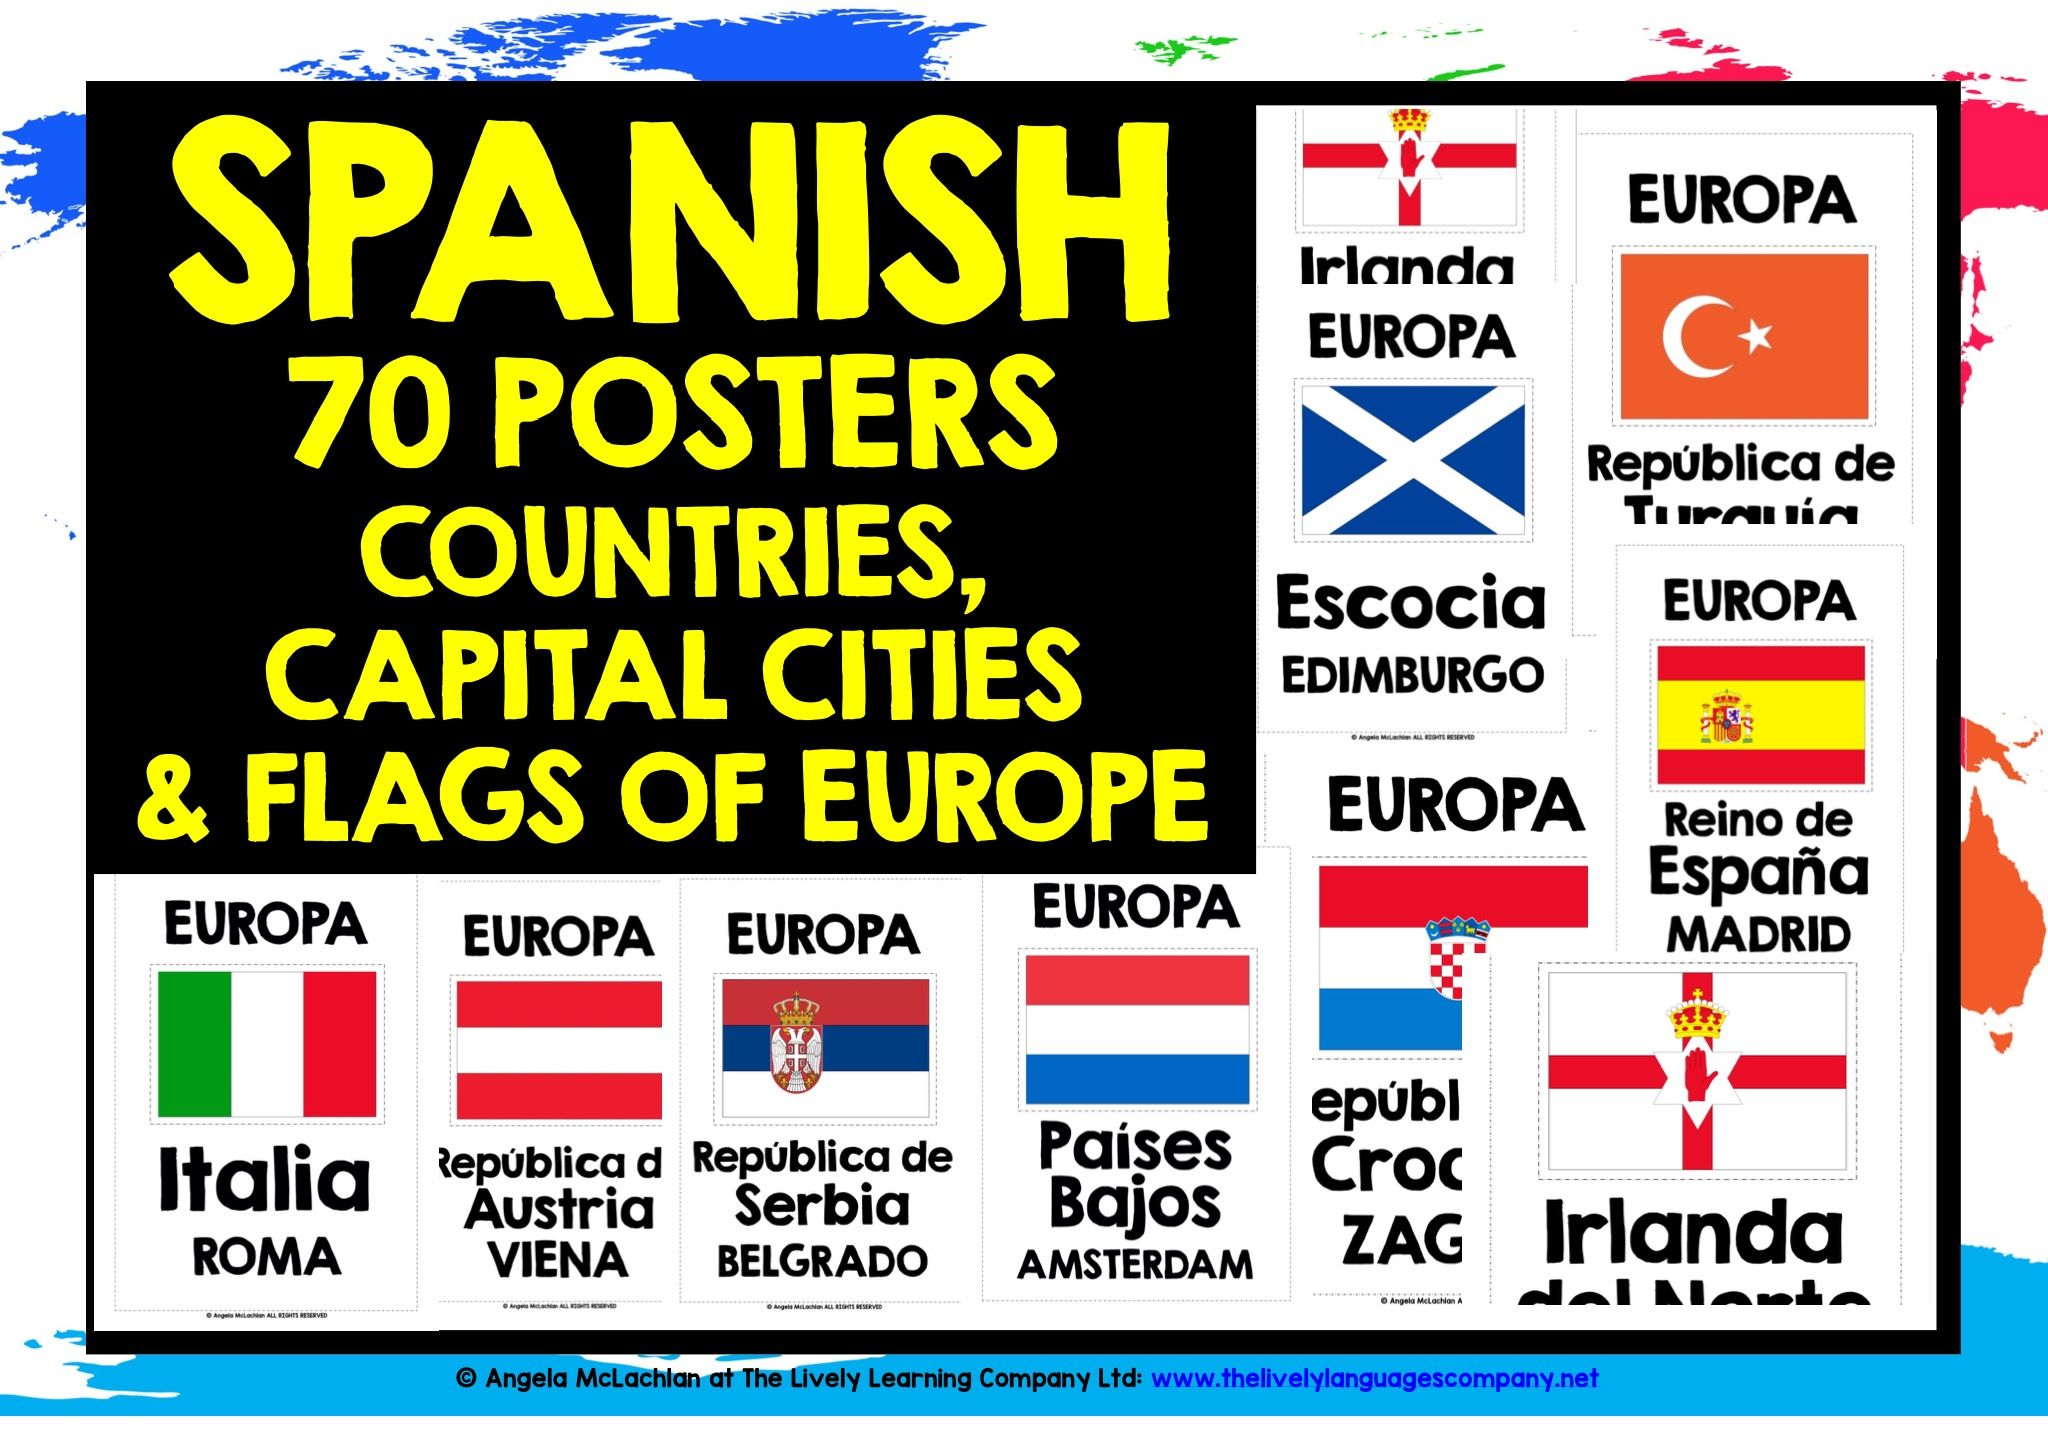 Spanish Europe Posters En Espanol With Images